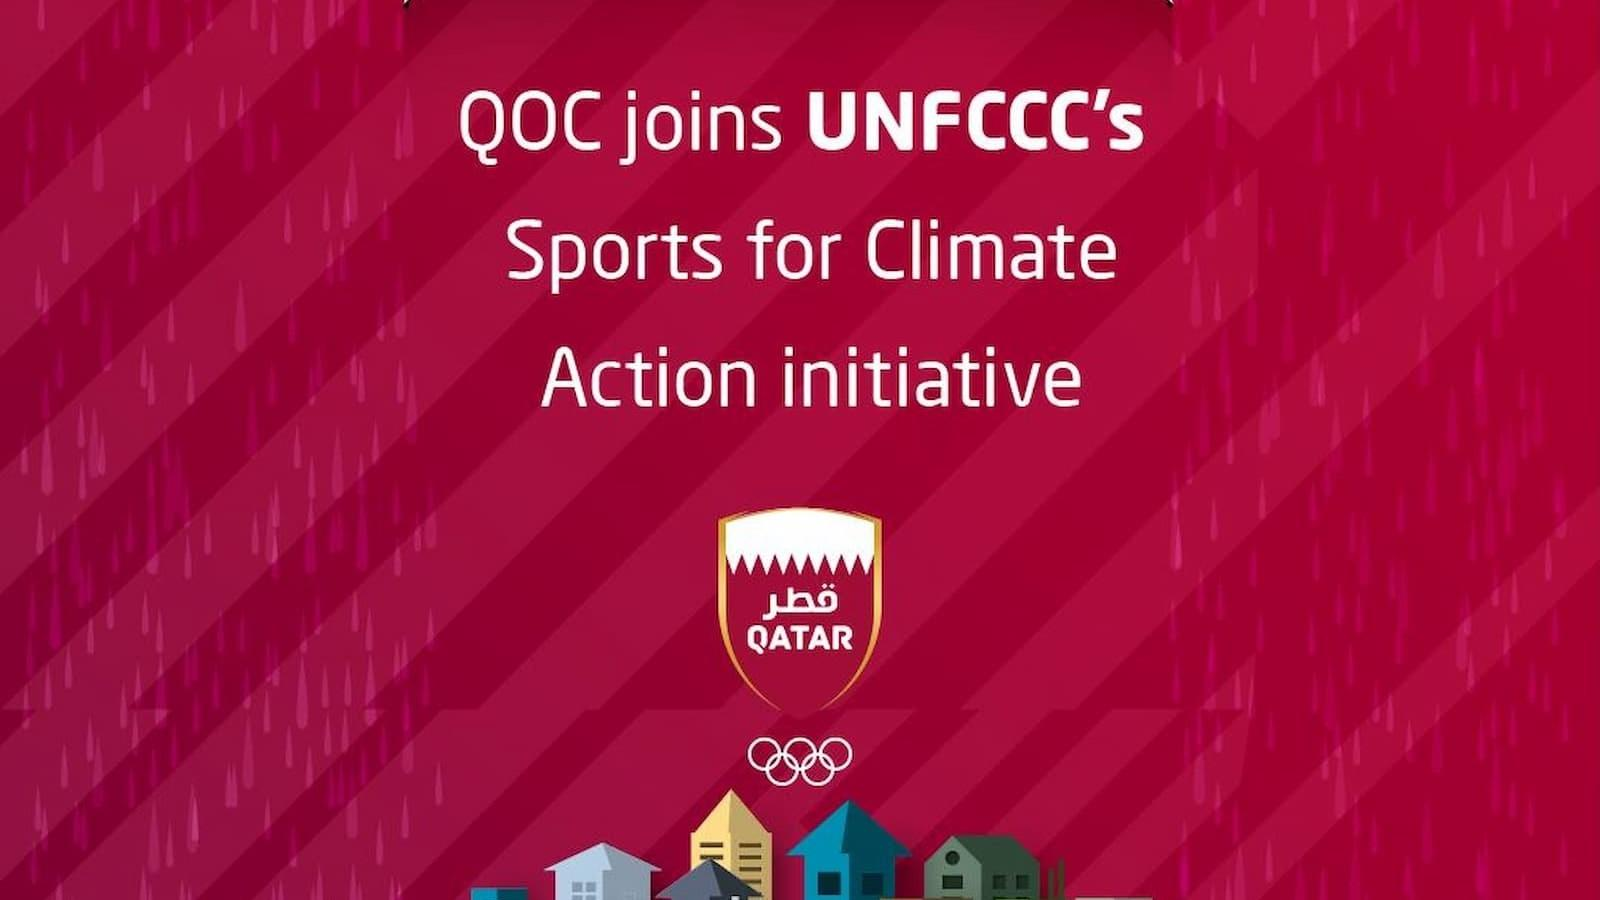 QOC joins UNFCCC's Sports for Climate Action initiative